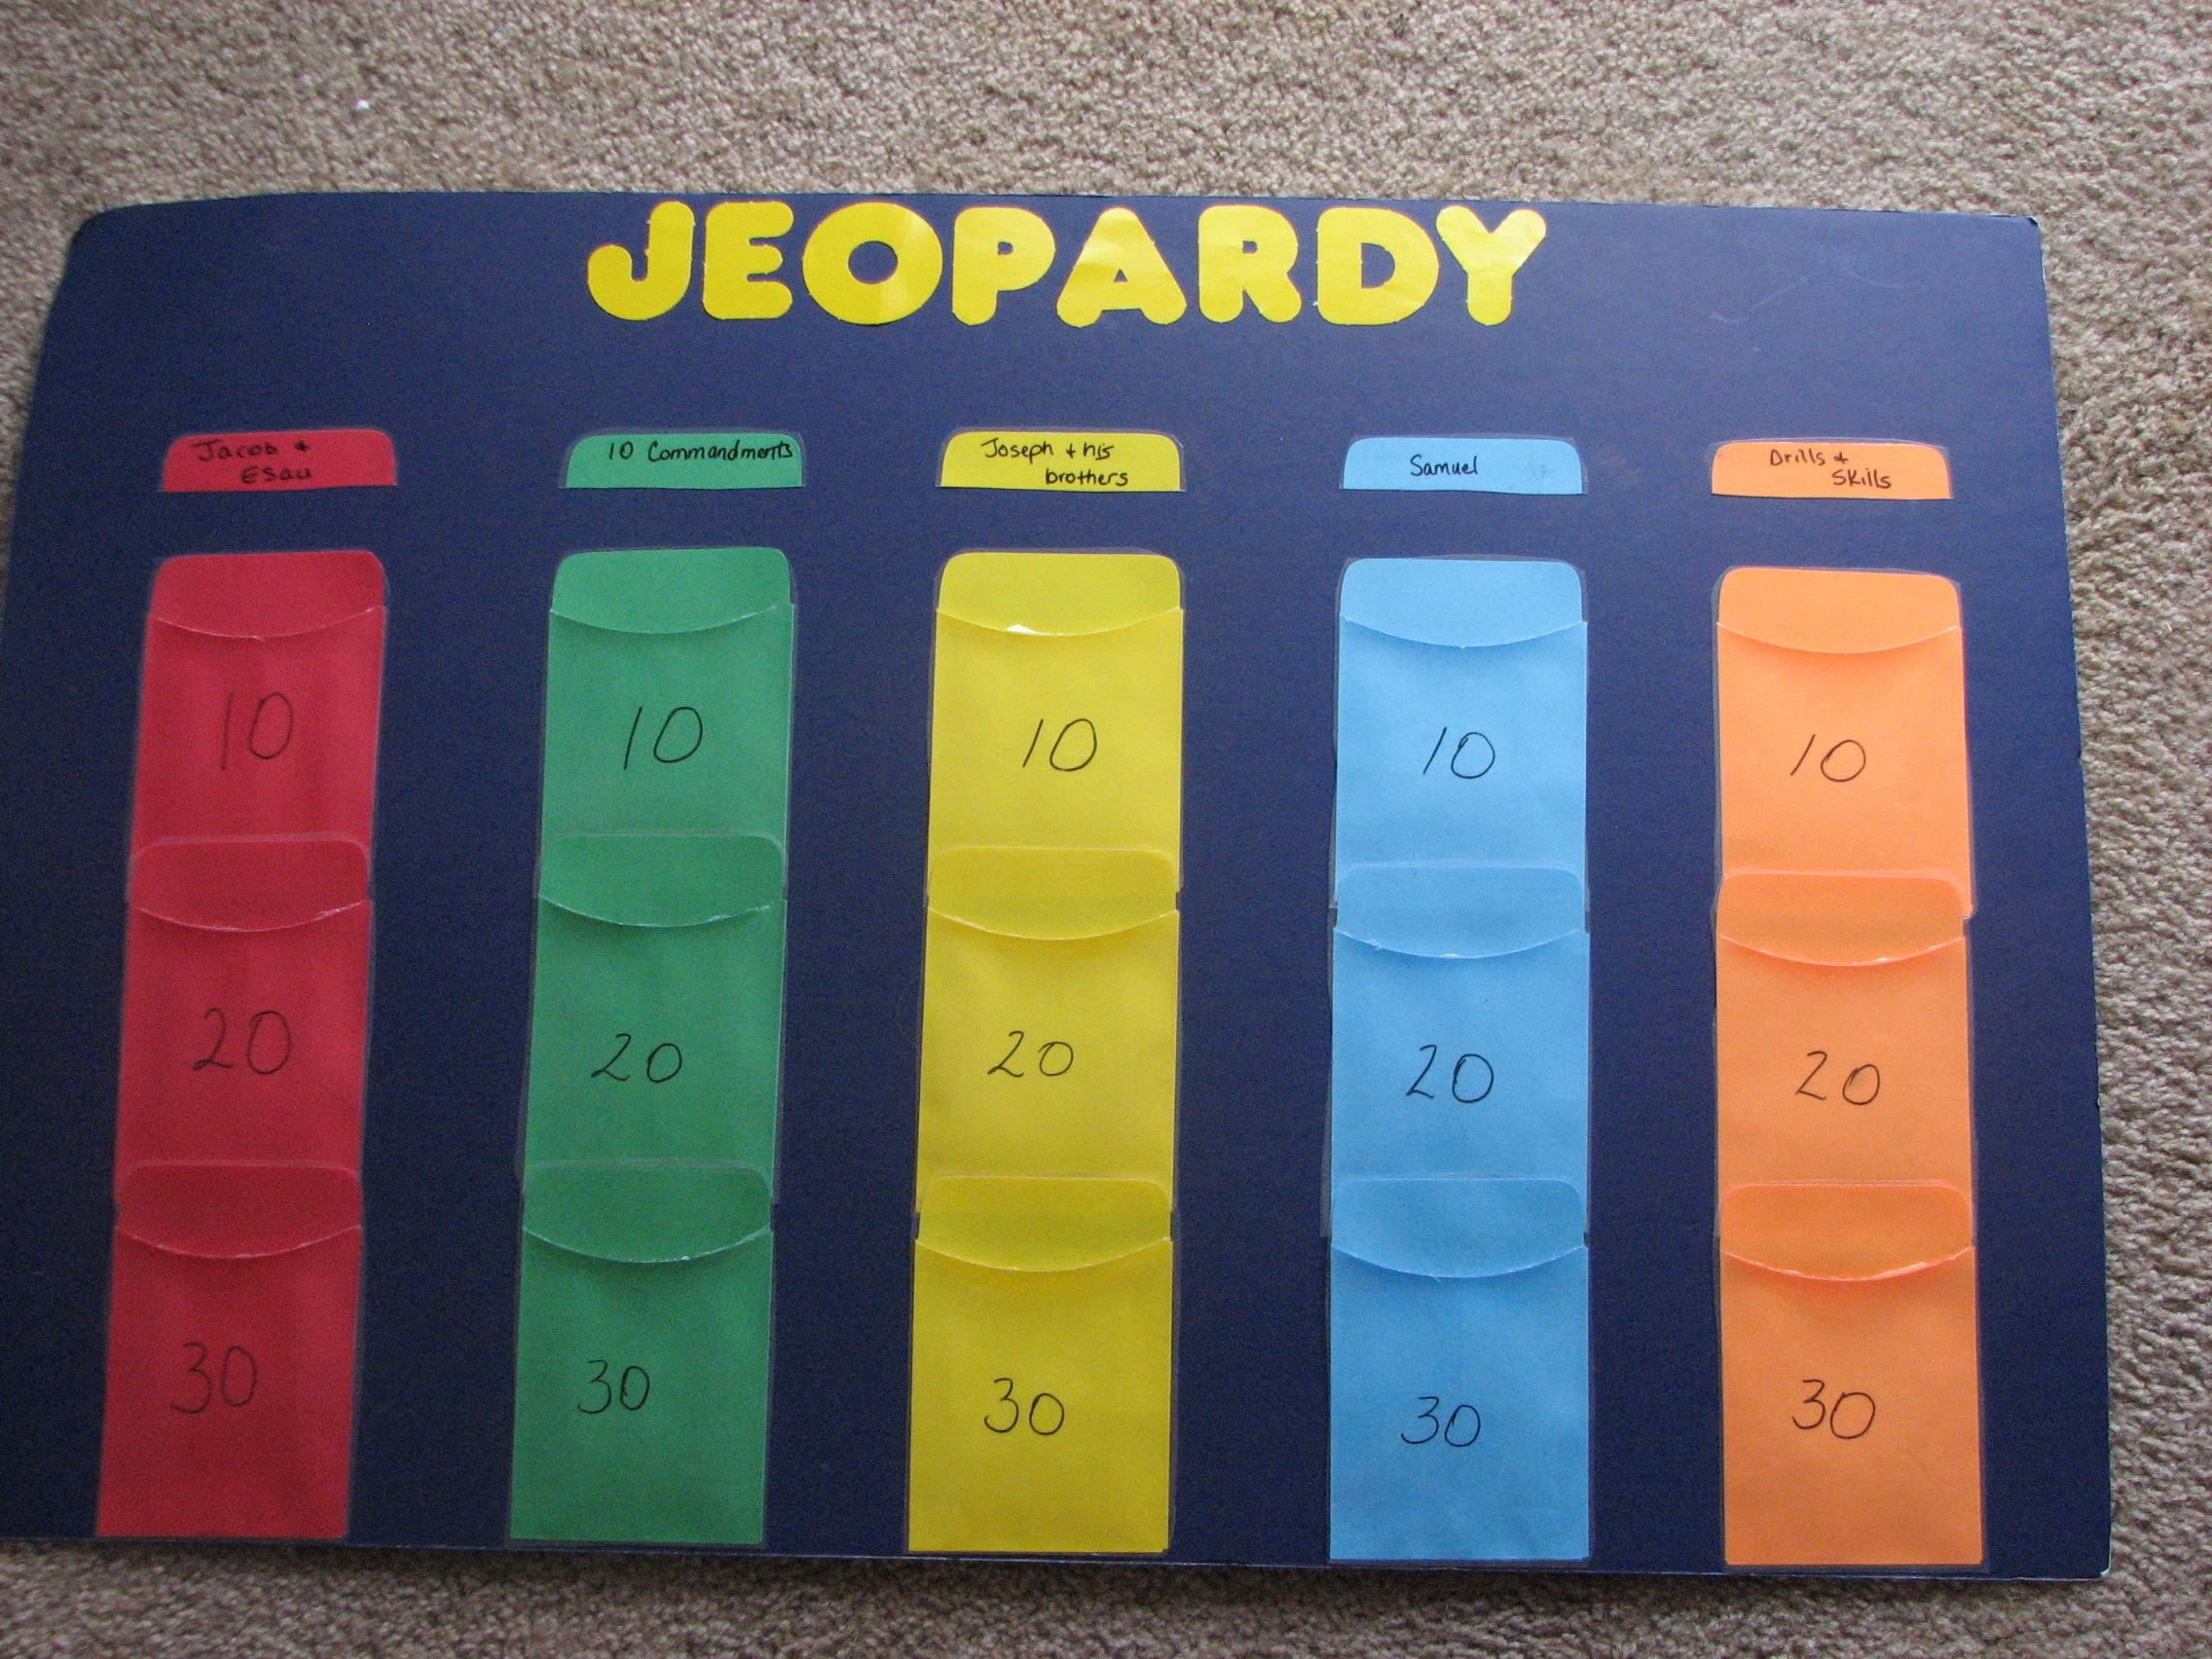 Youth jeopardy games movie releases dythepiratebay for Kids jeopardy template